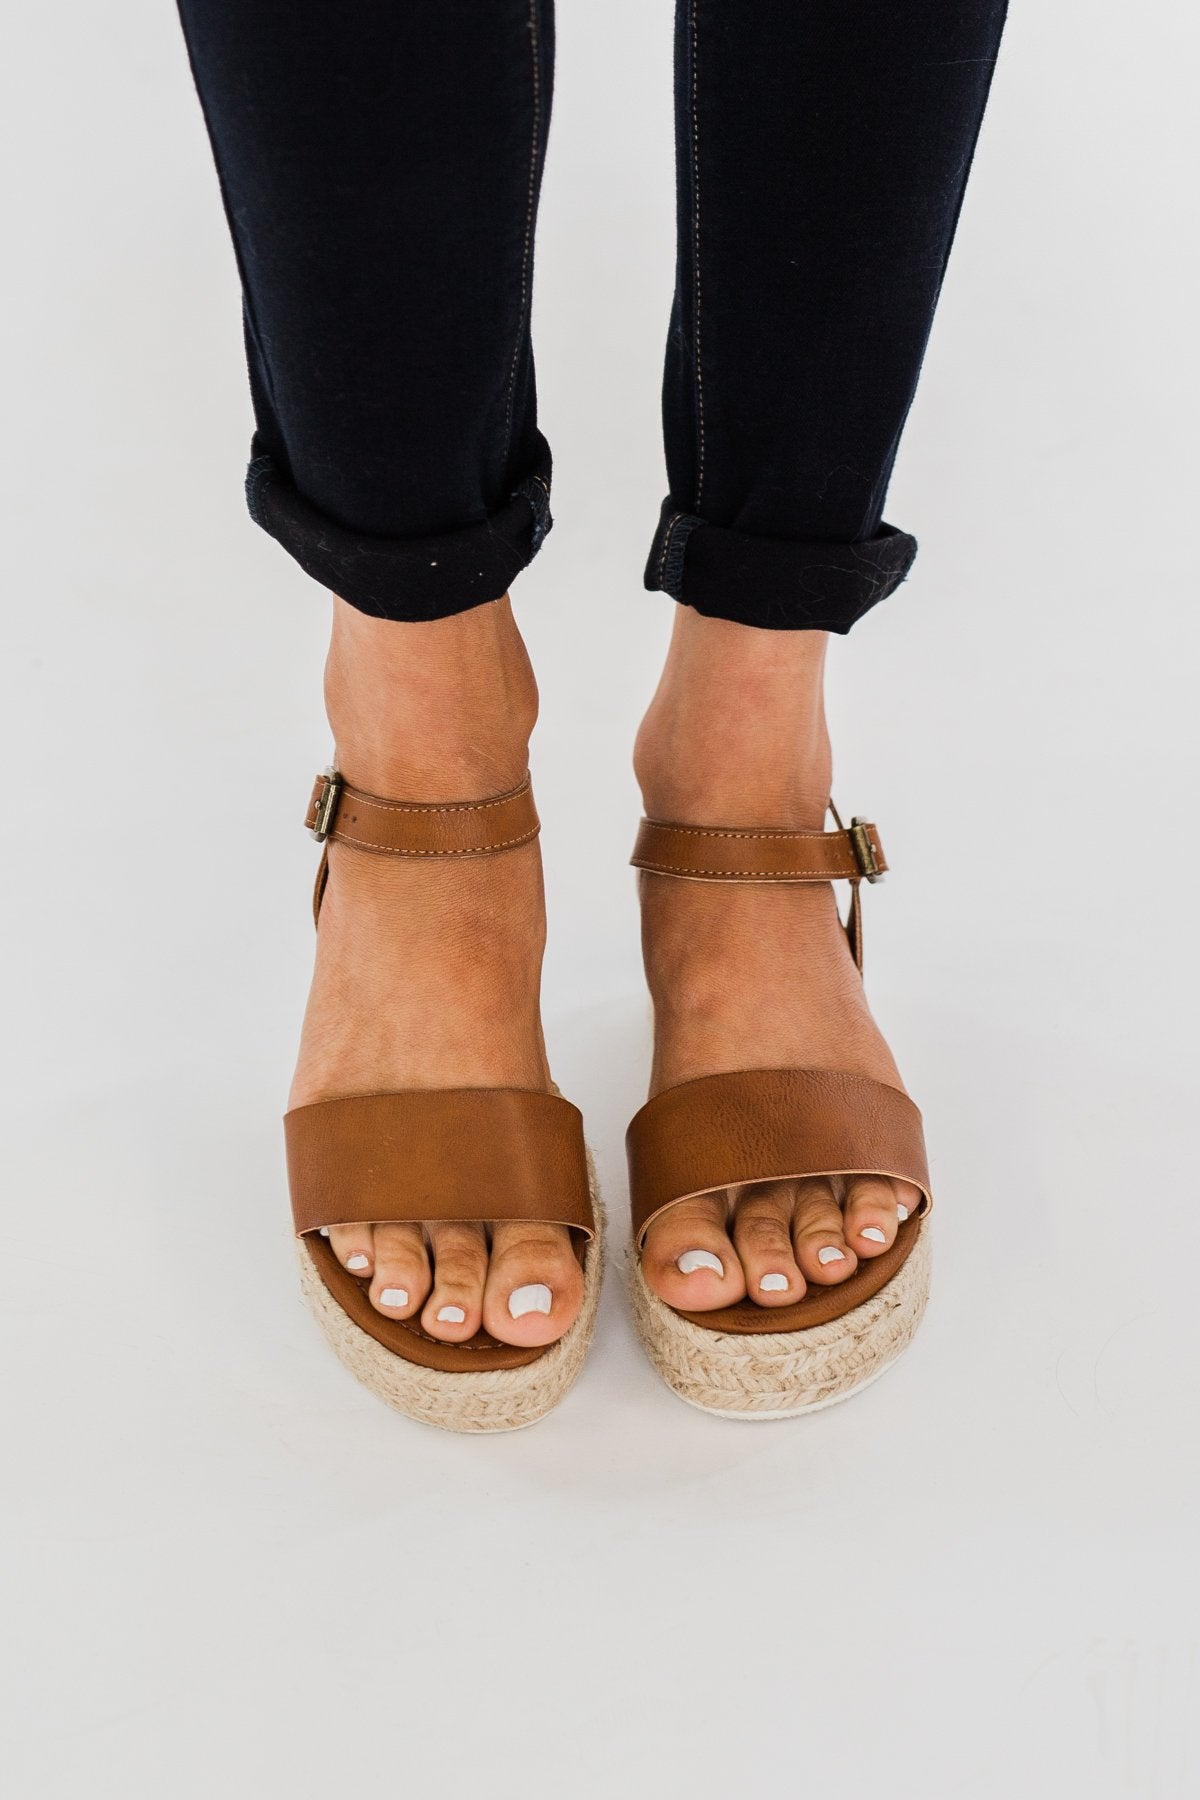 Sugar Turntable Platform Wedges- Cognac